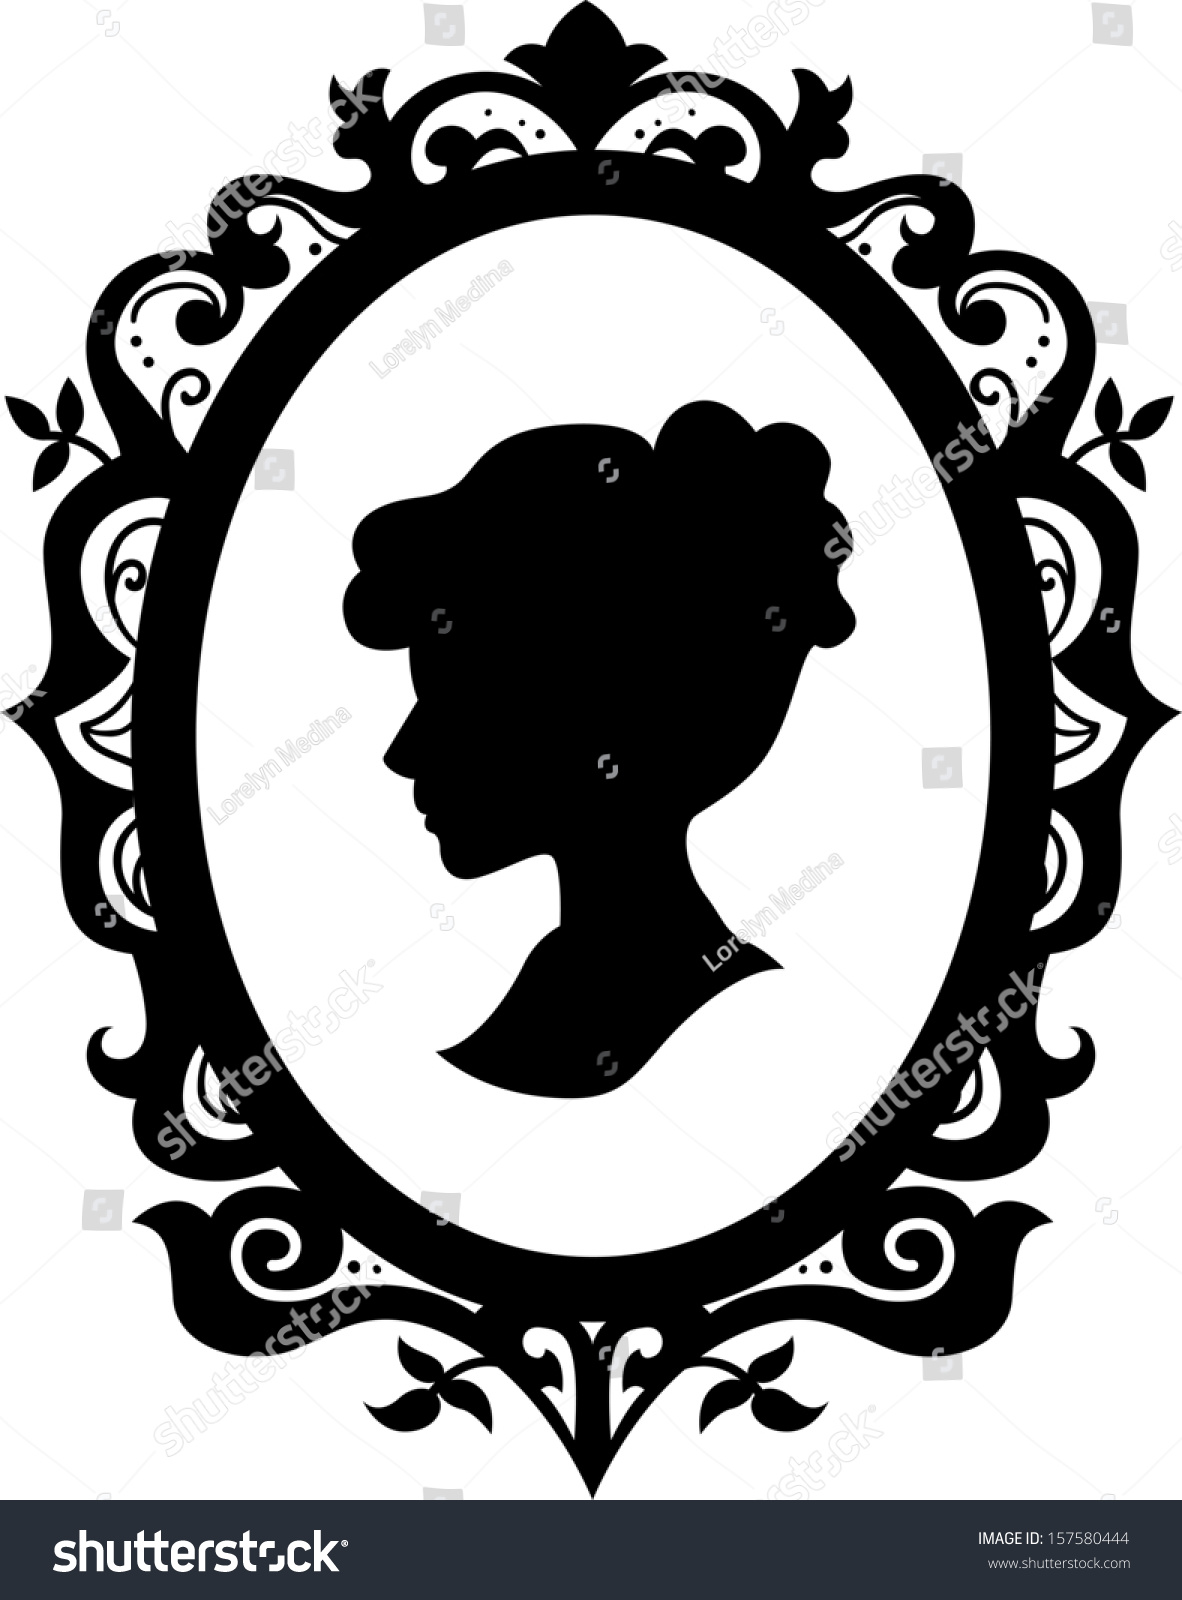 Black White Illustration Cameo Featuring Silhouette Stock